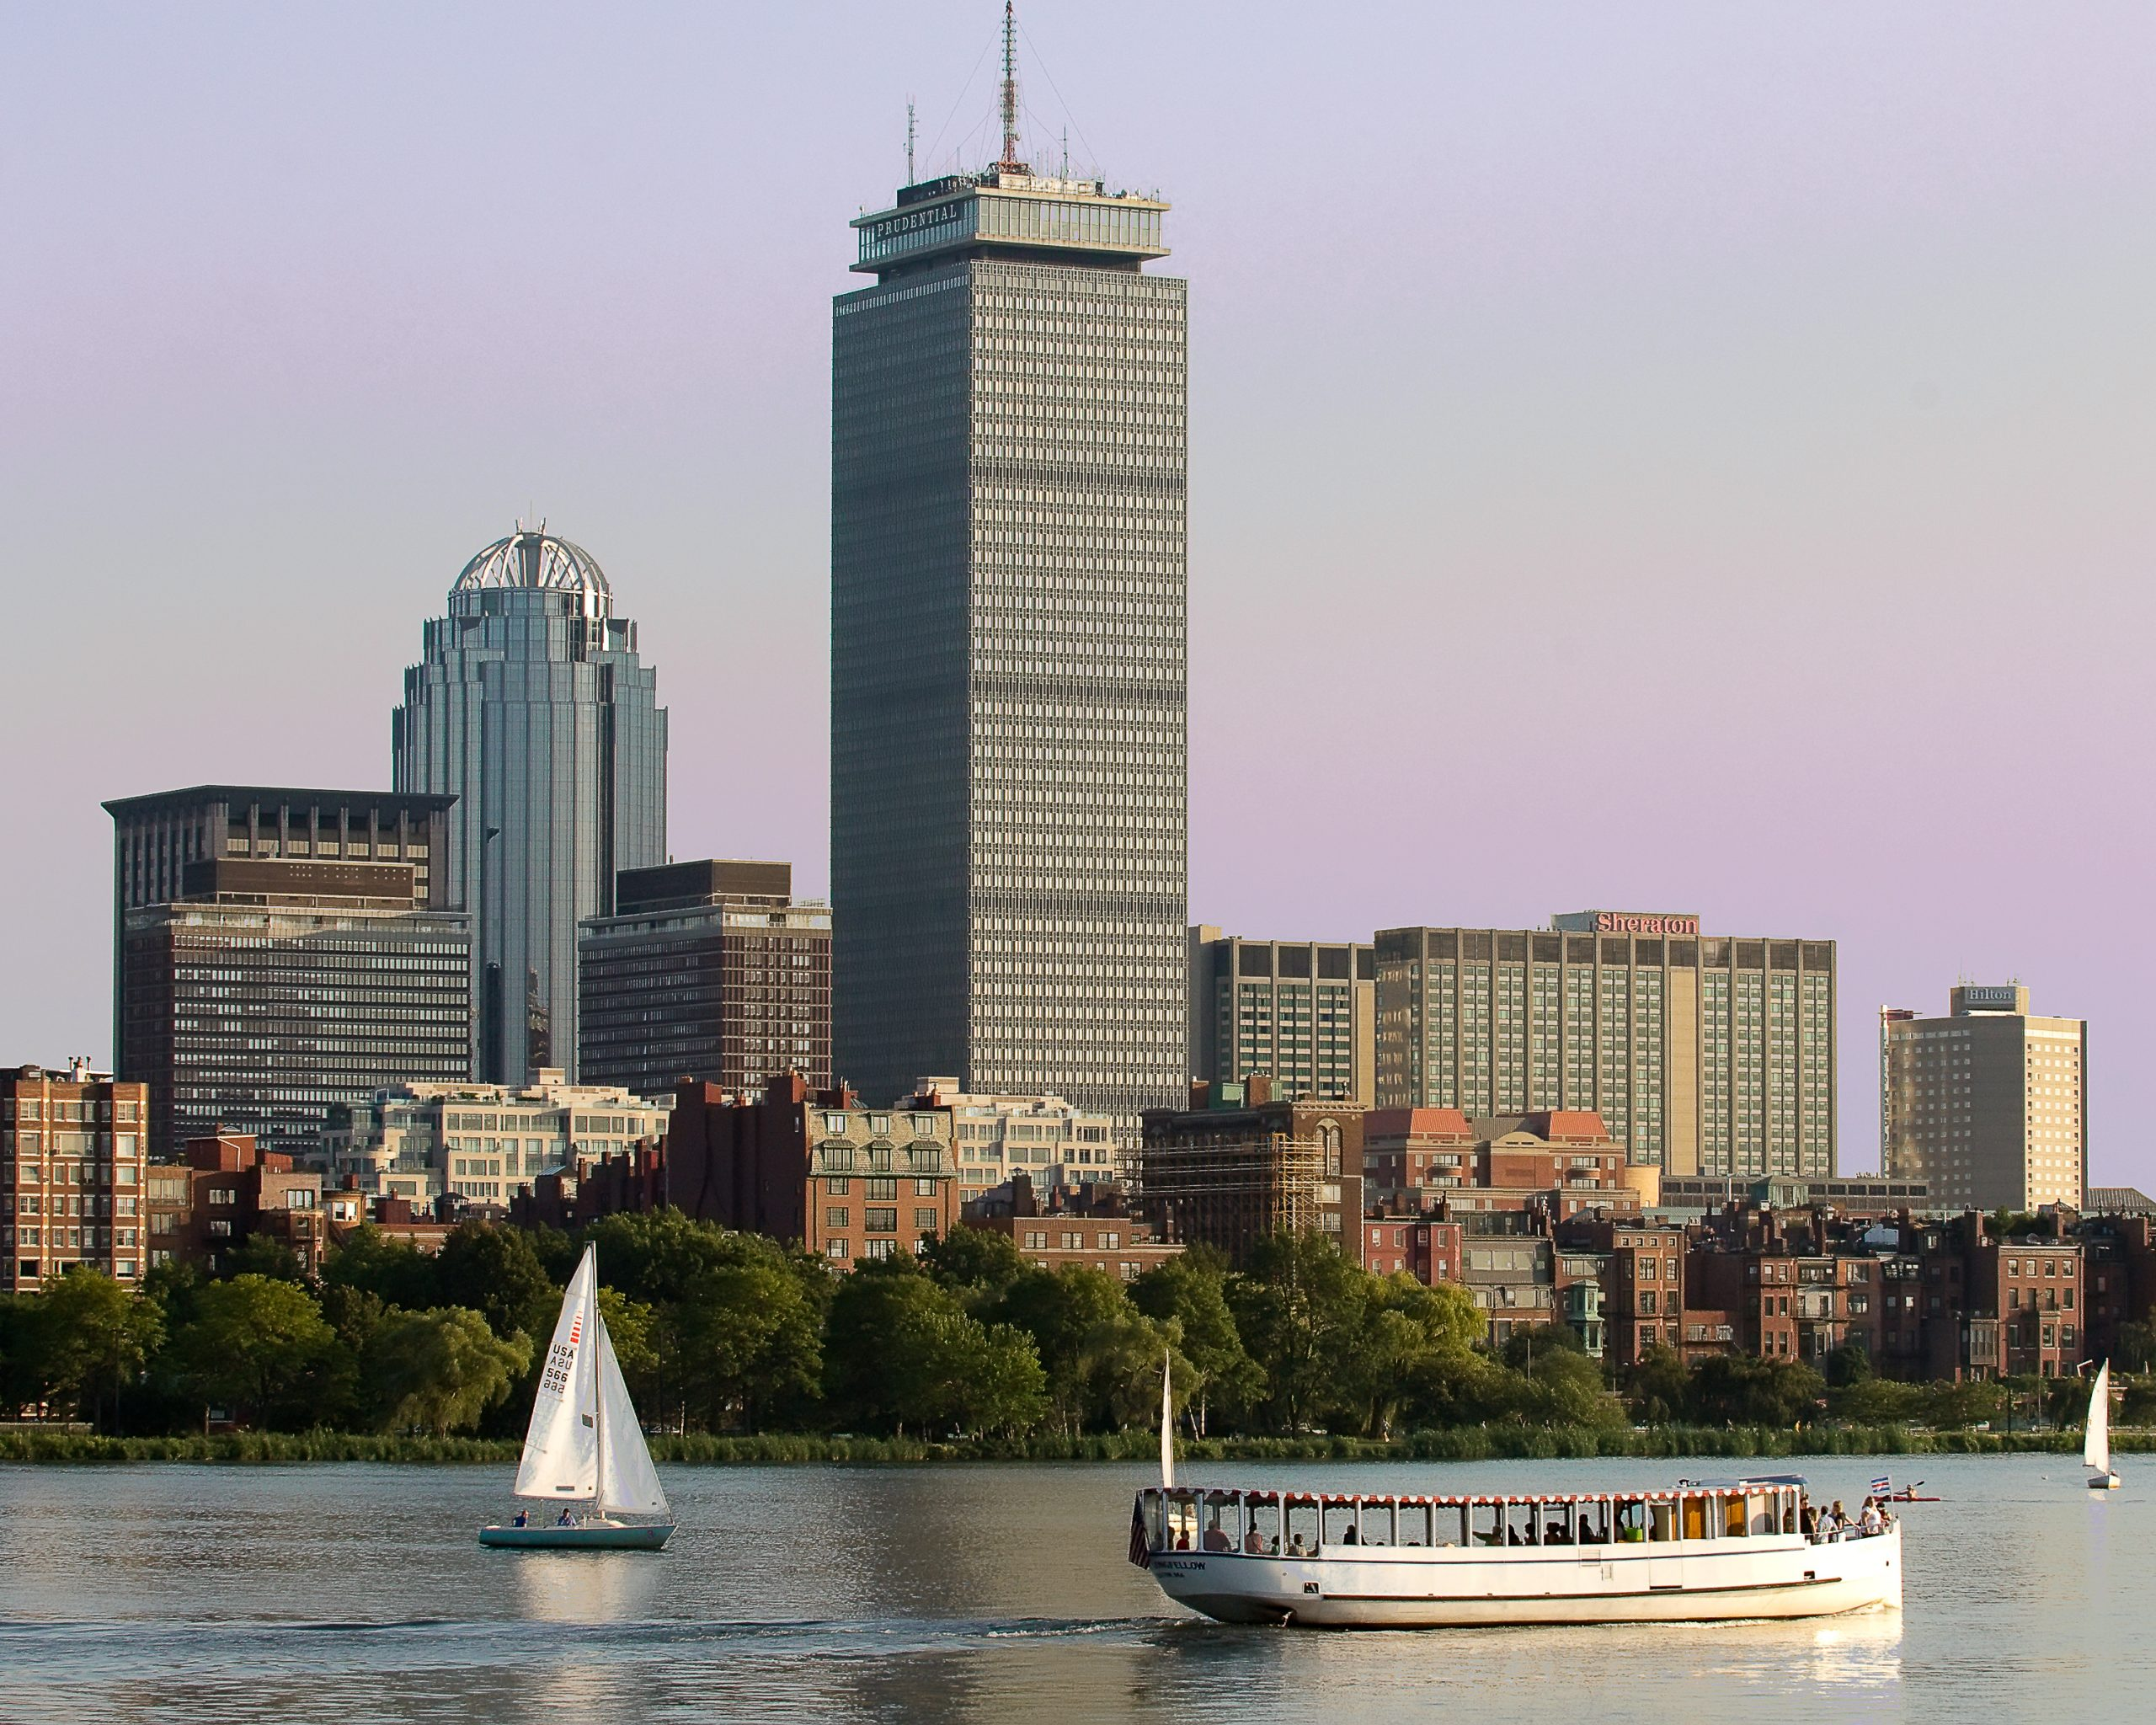 The Henry Longfellow of the Charles River Boat Company cruises along the Charles River basin.